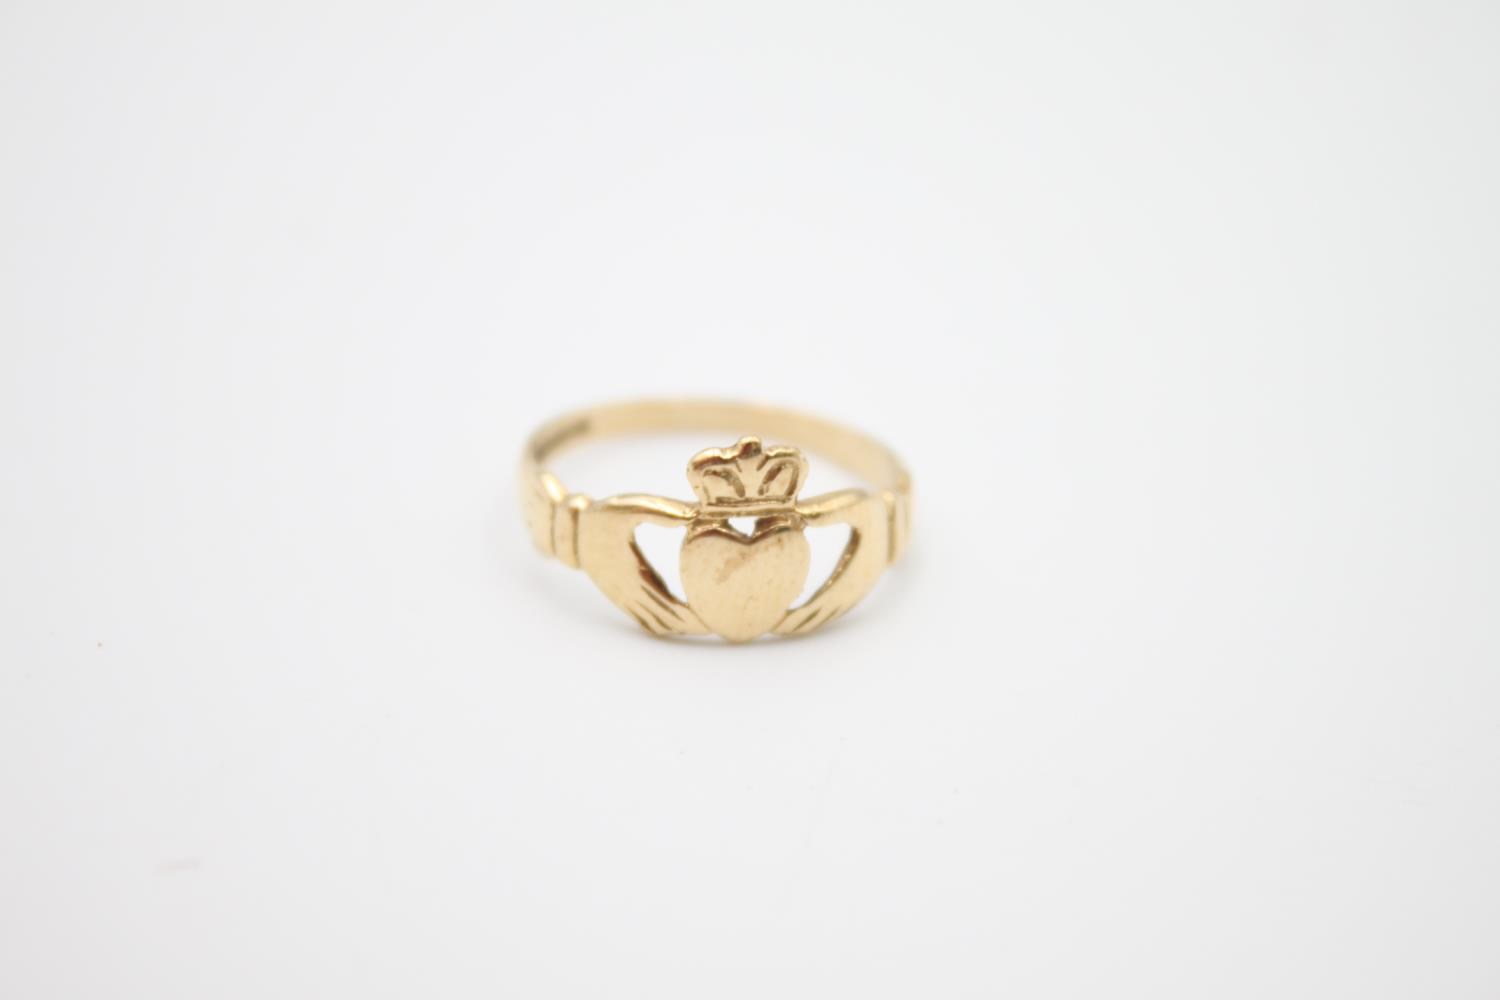 2 x 9ct gold Claddagh rings 4.1g Size K & O - Image 4 of 5